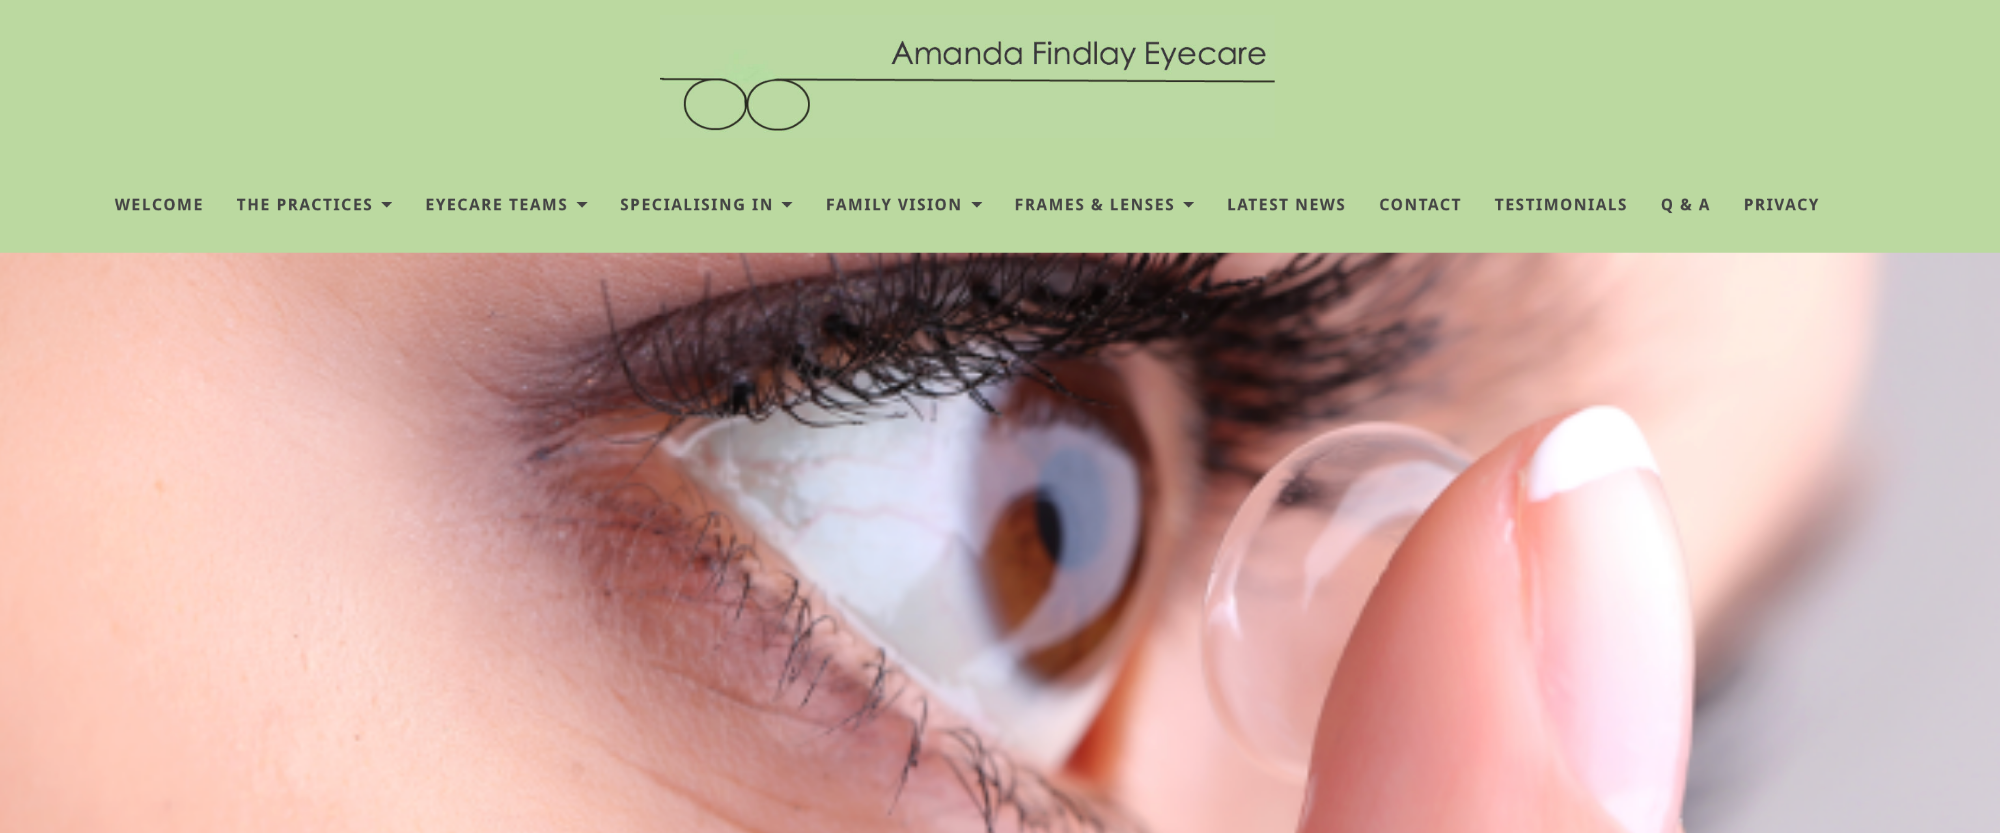 Amanda Findlay Eyecare